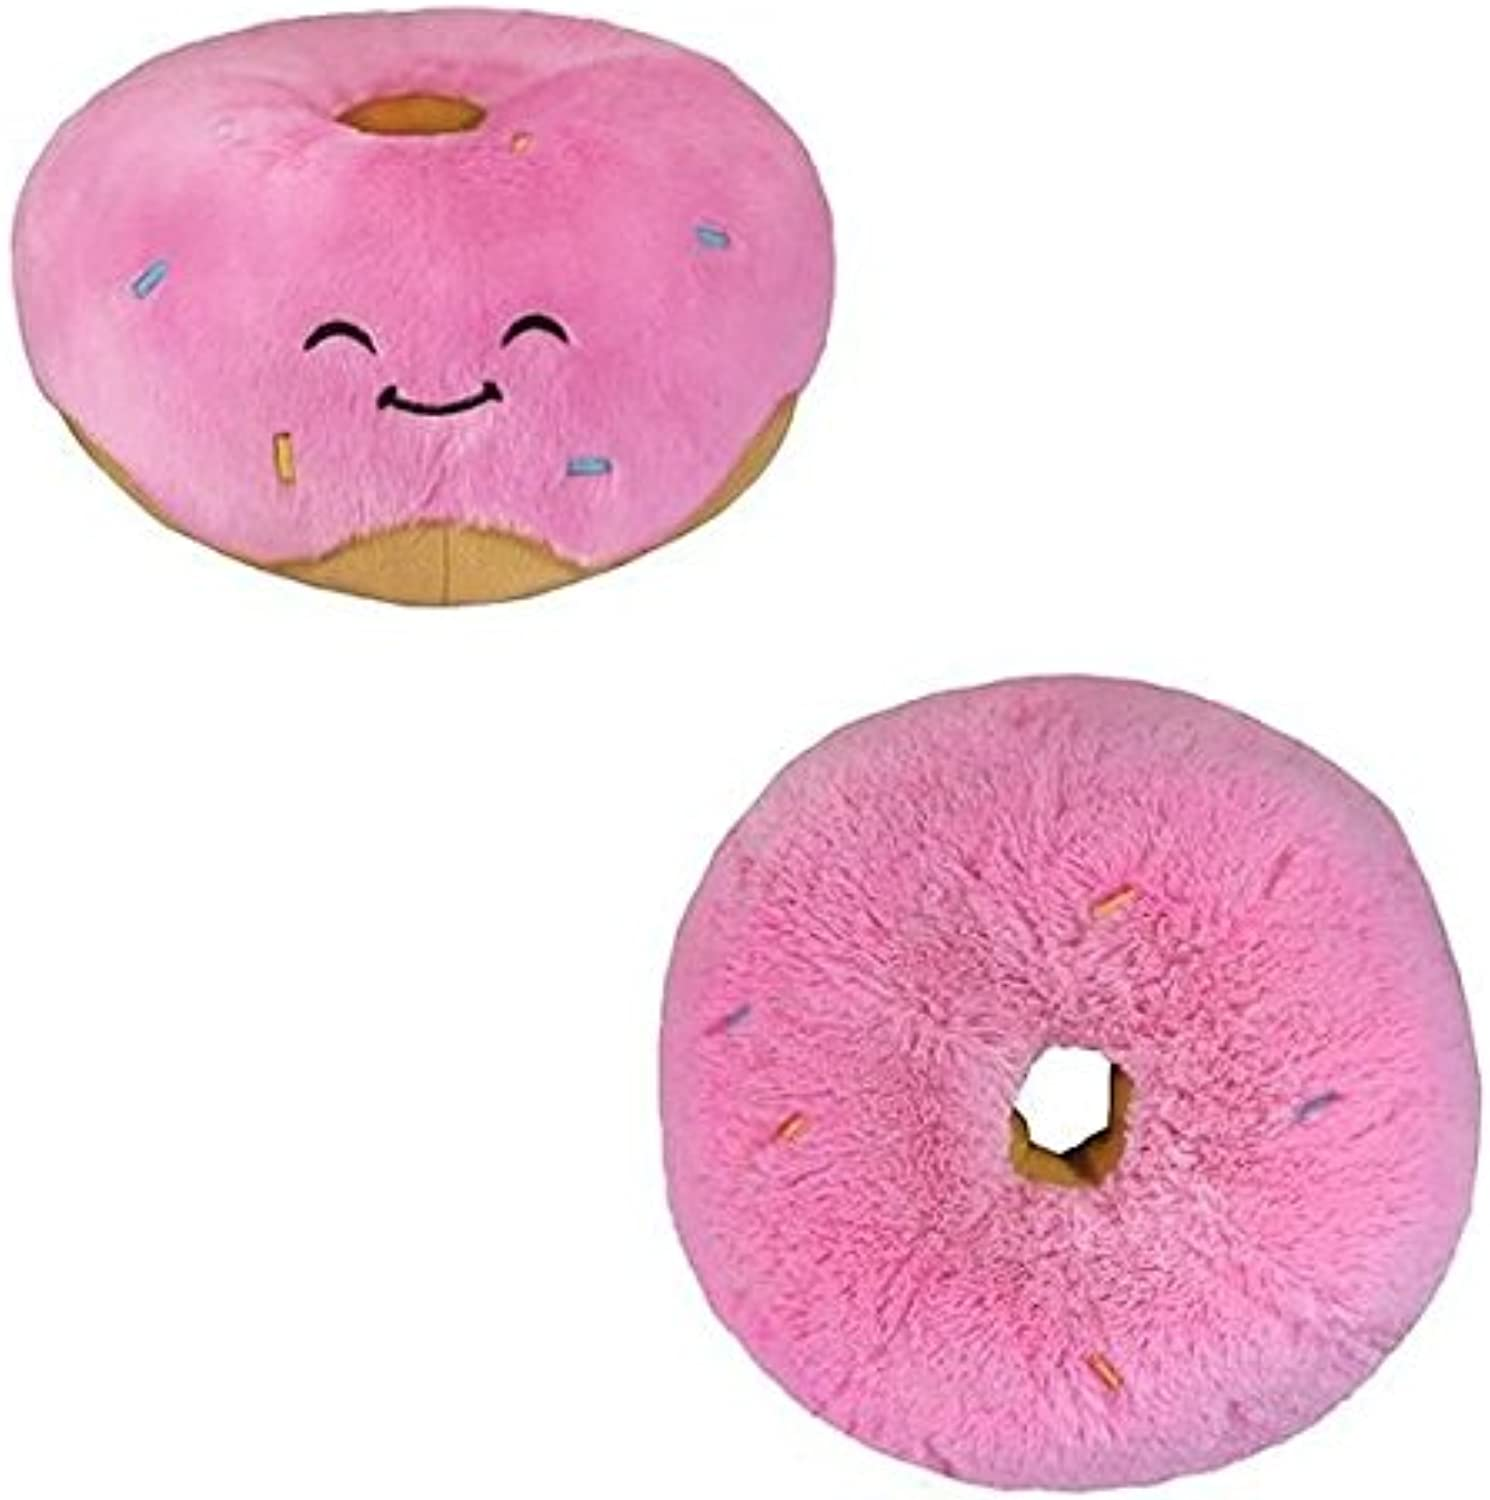 Squishable   Pink Donut Plush  15  [Toy]